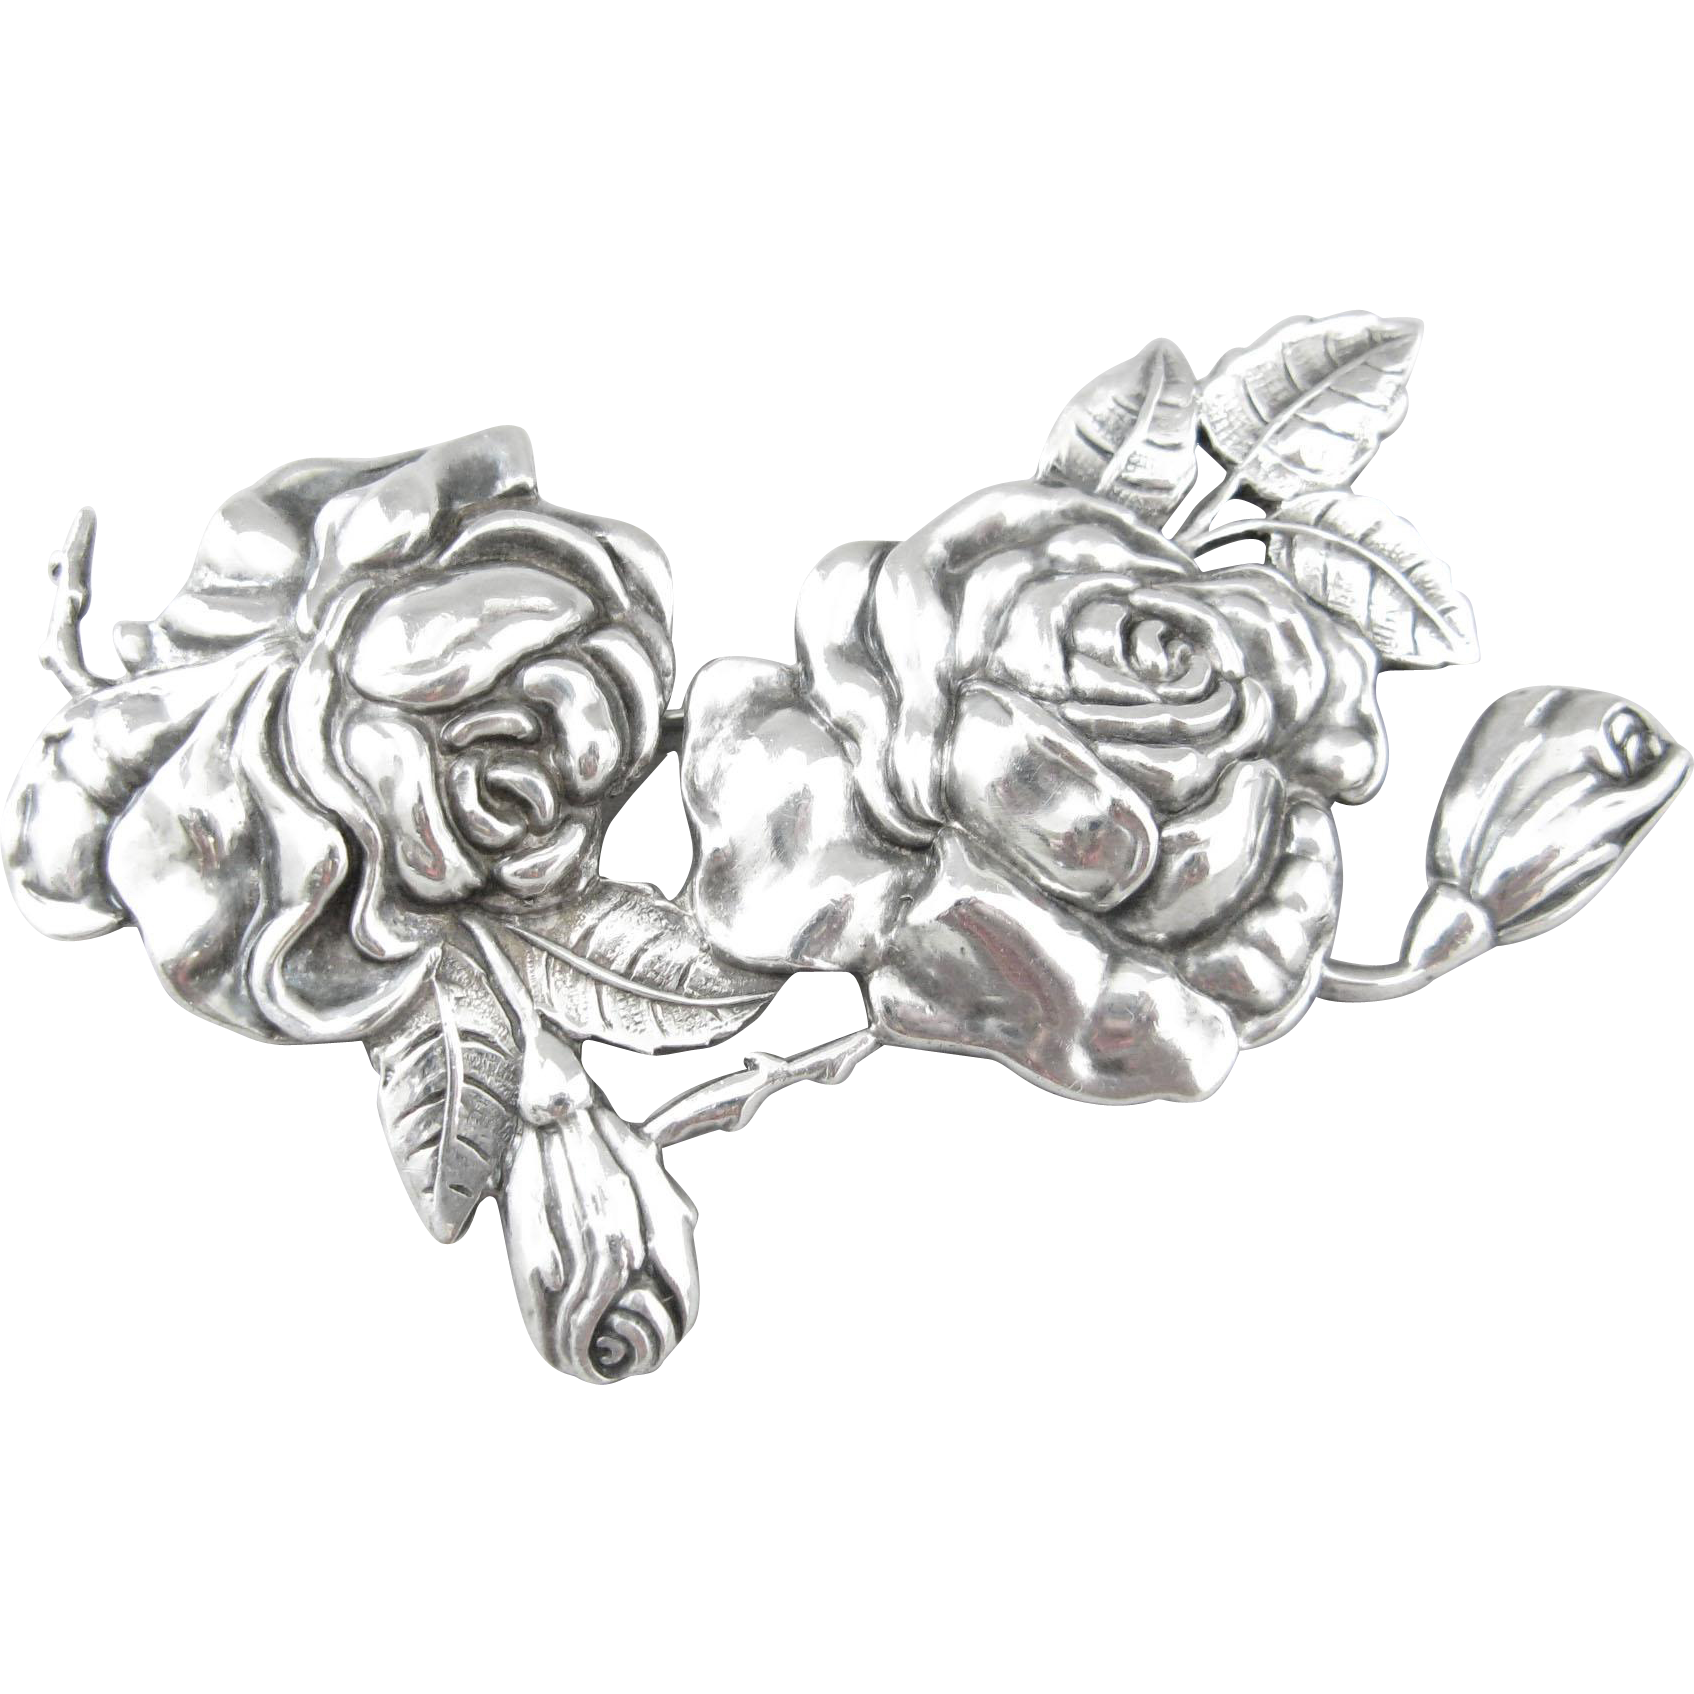 Pins drawing silver. Margot de taxco sterling